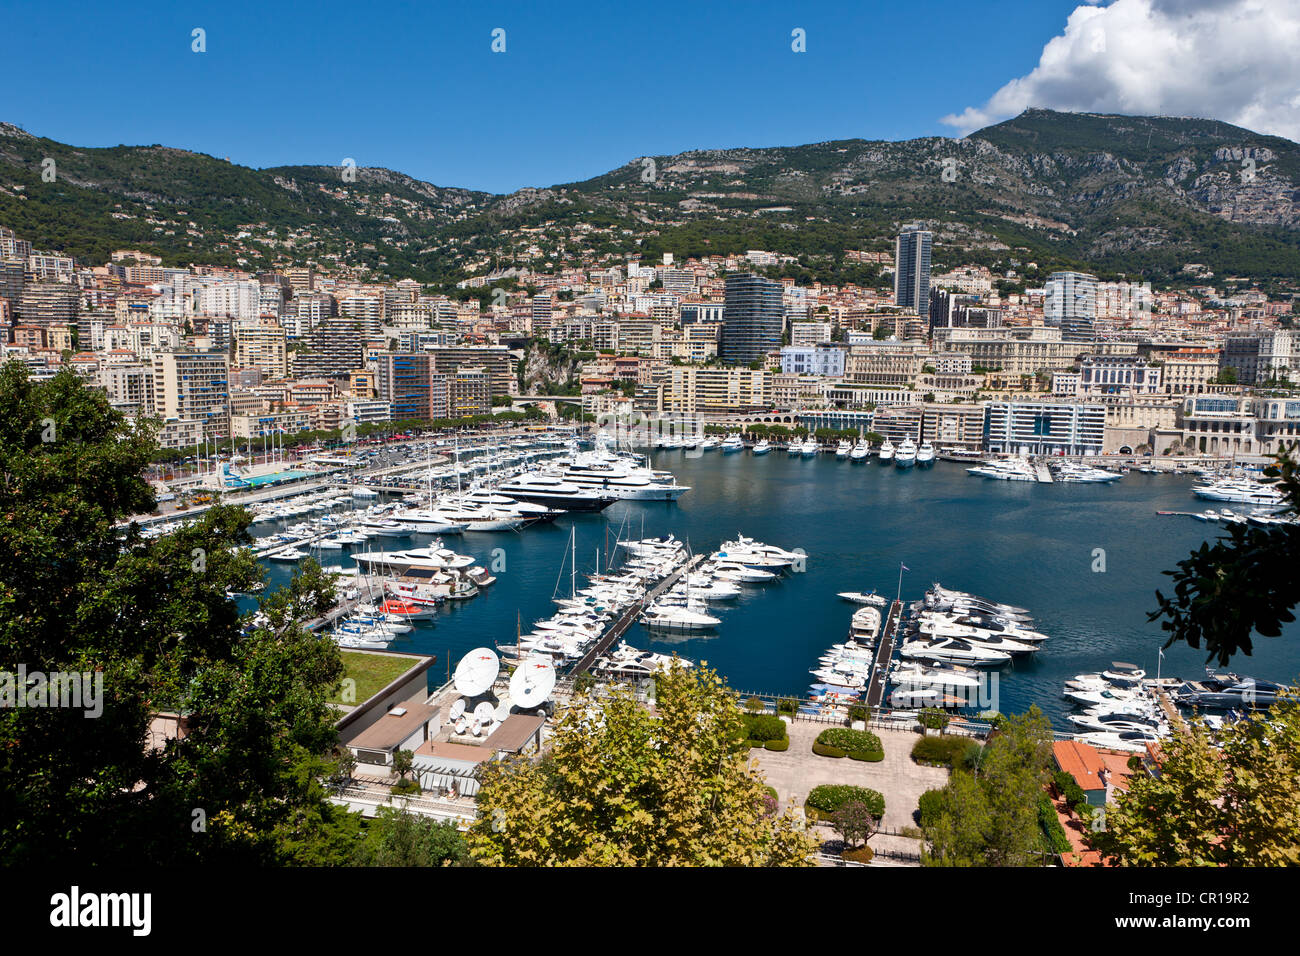 Overlooking the harbour of Monaco, Port Hercule, Monte Carlo, Principality of Monaco, Côte d'Azur, Mediterranean - Stock Image